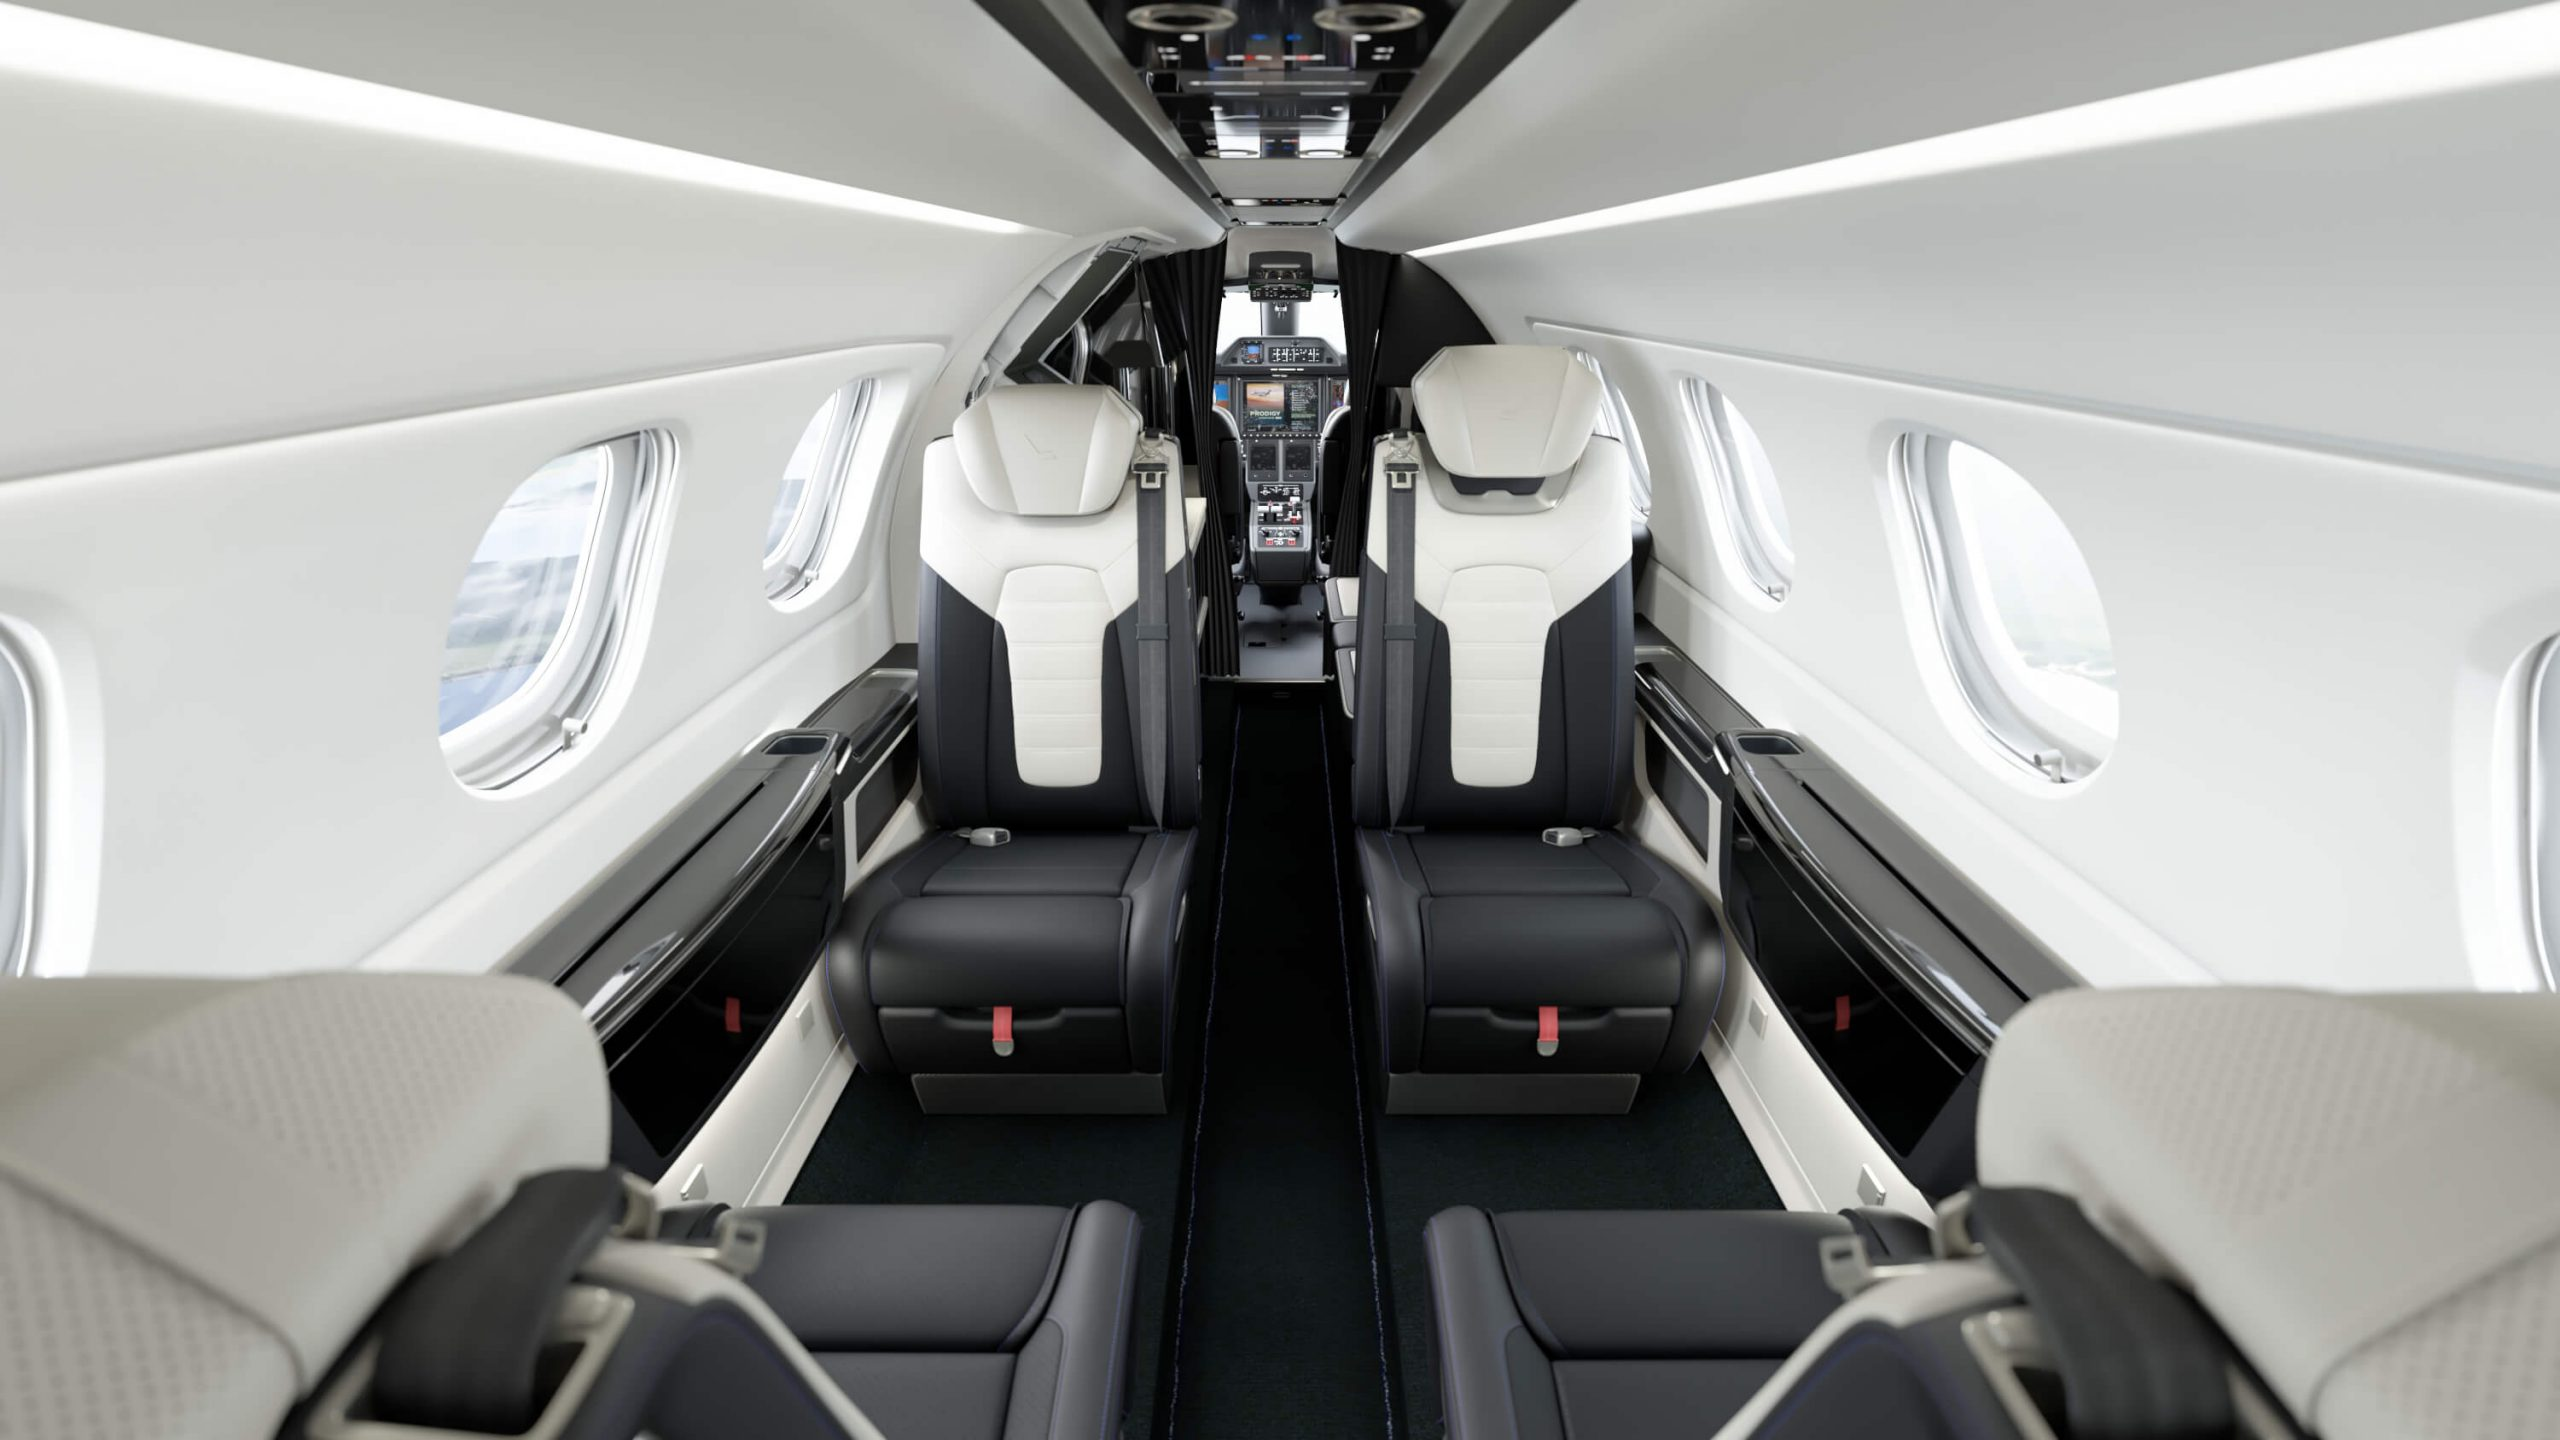 Embraer and Porsche cooperate to launch limited edition Duet. Part 2